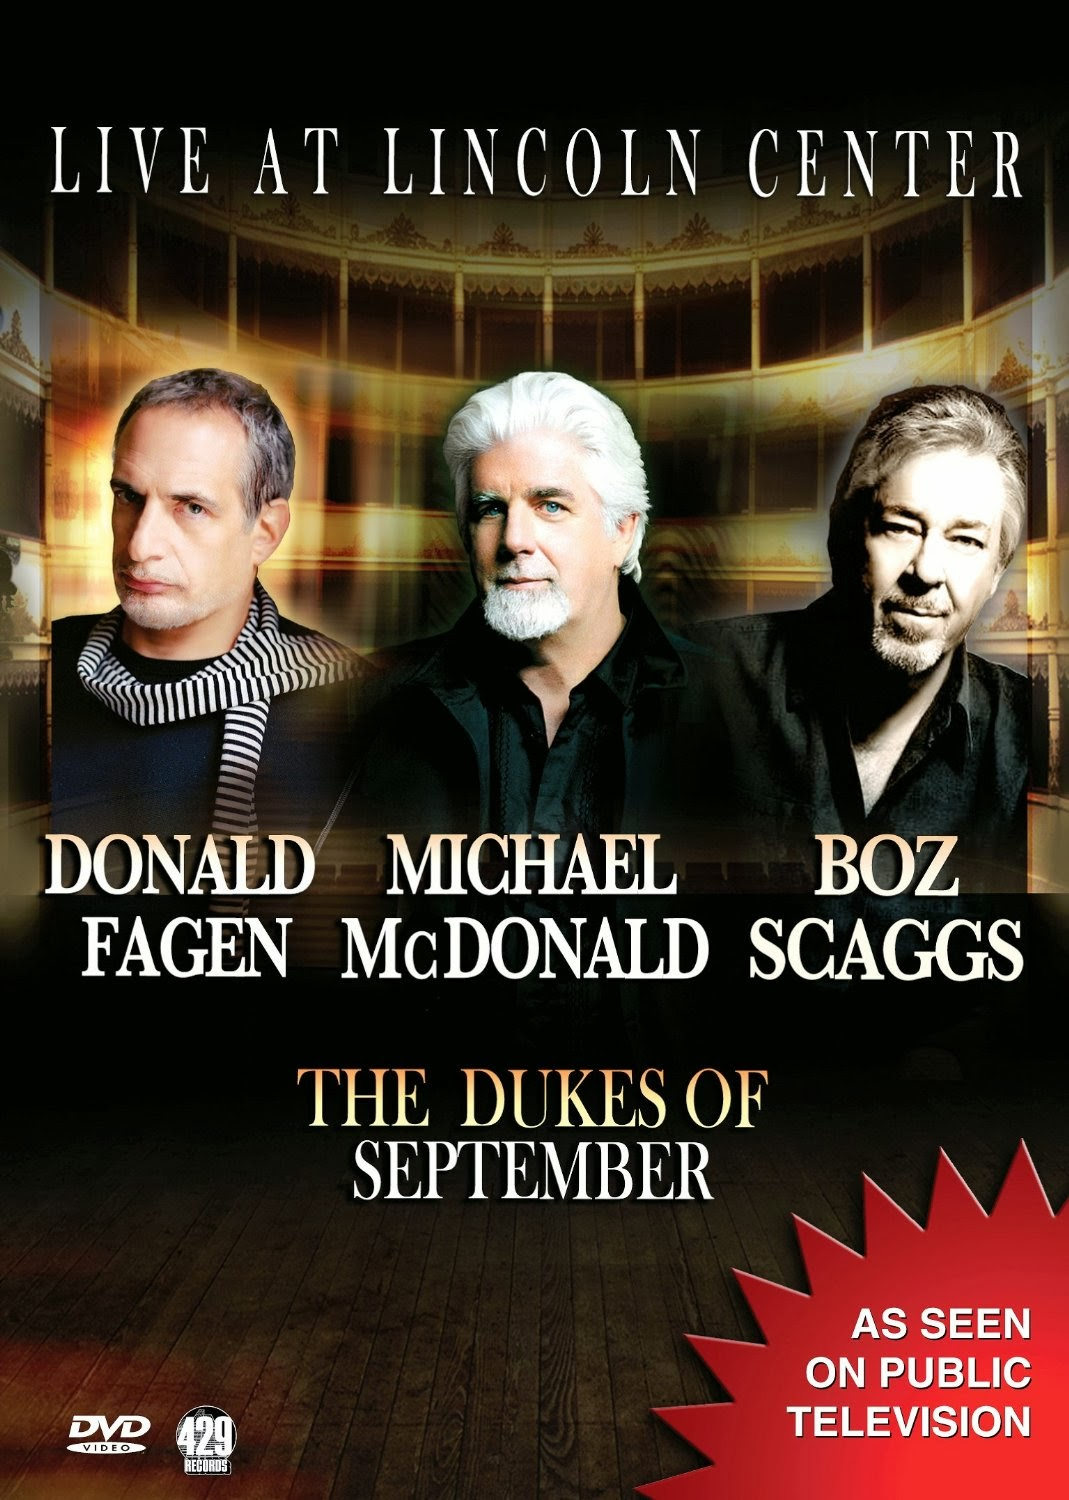 The Dukes of September